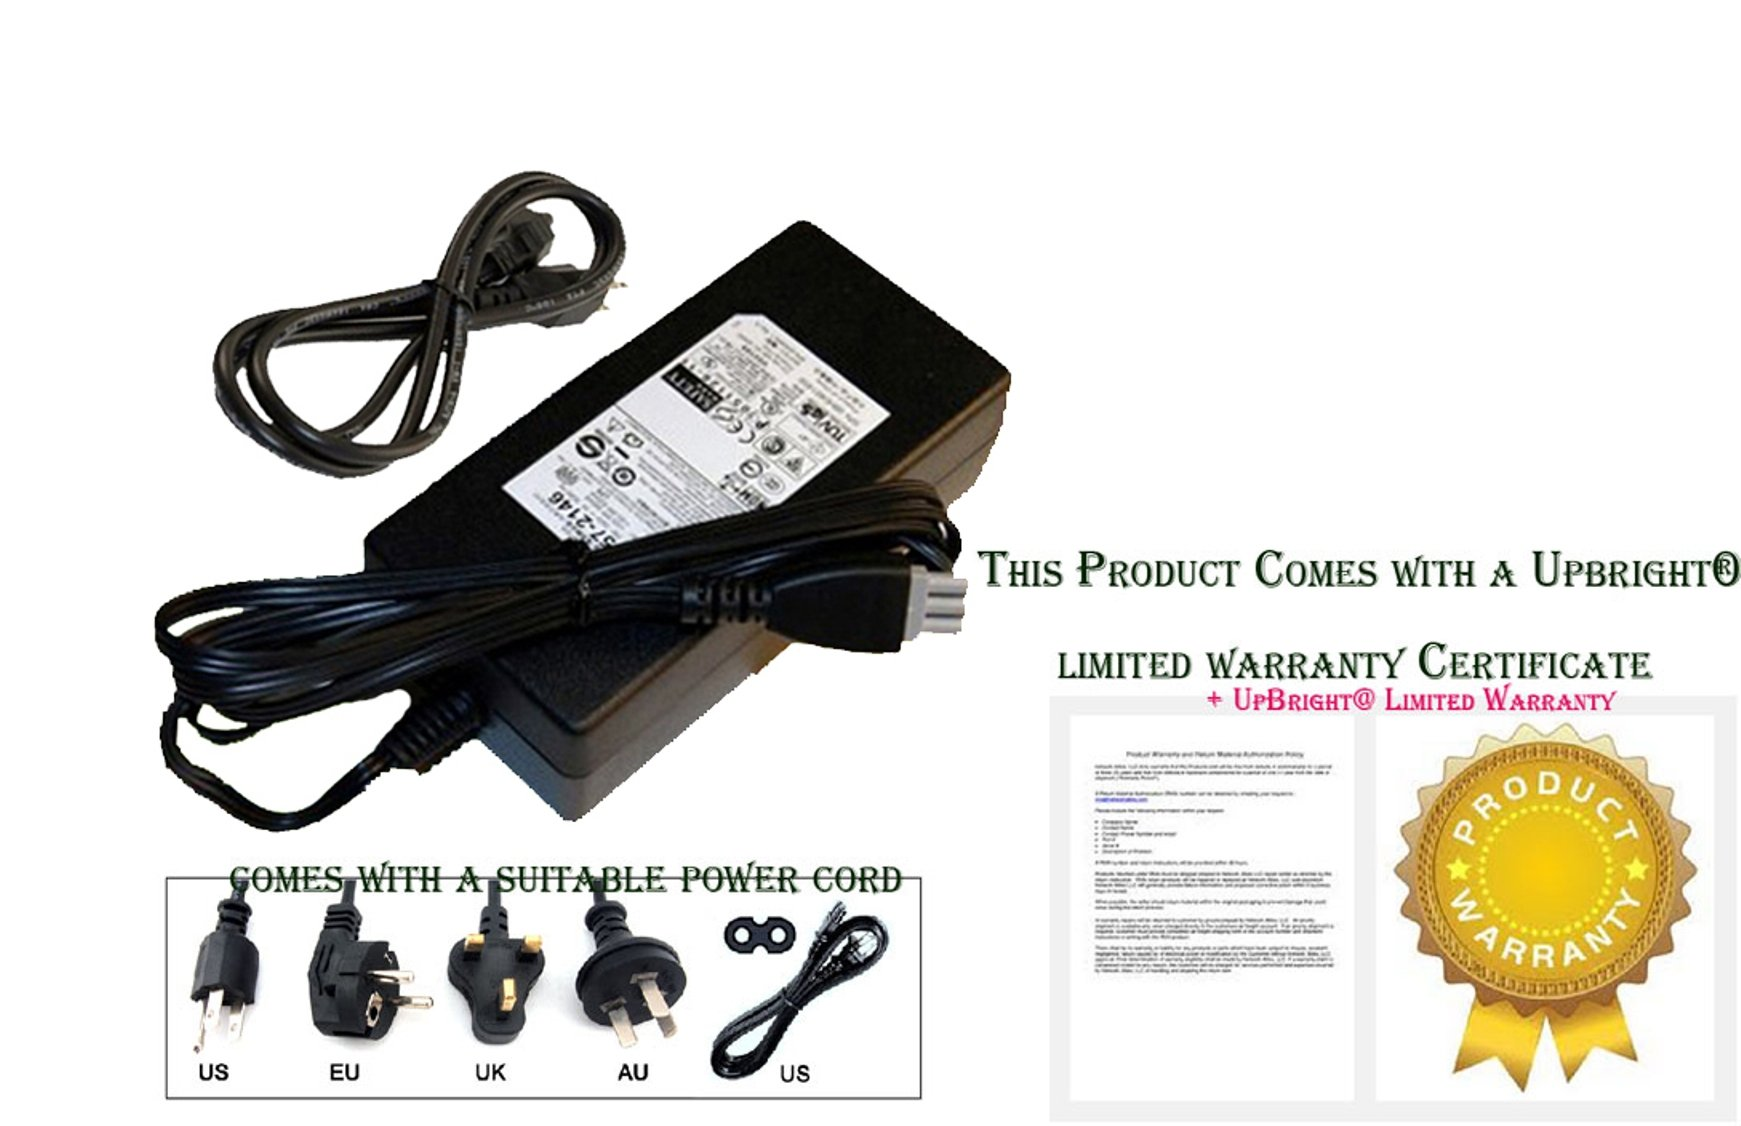 UpBright NEW Global AC / DC Adapter For HP Photosmart C5200 Photo smart C 5200 All-in-One Series Color AIO Printer 32V 16V Power Supply Cord Cable PS Charger Mains PSU